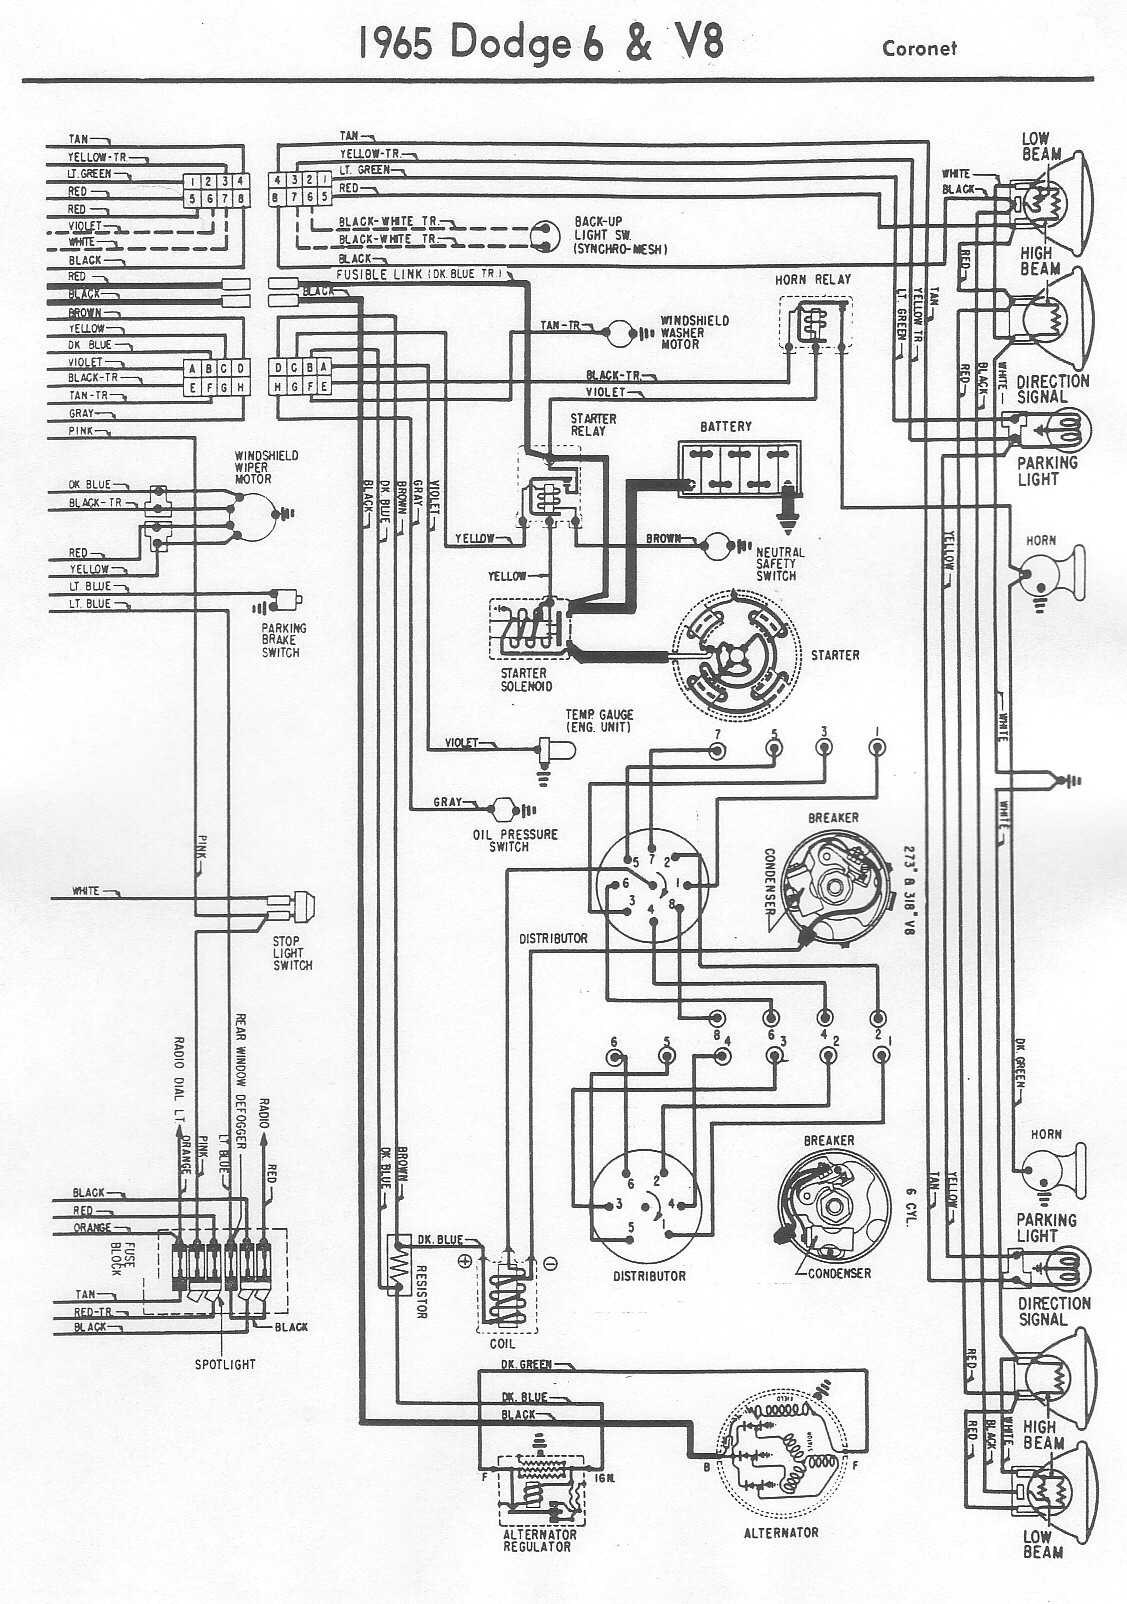 small resolution of 1965 dodge wiring diagram wiring diagram img 1965 dodge coronet wiring diagram